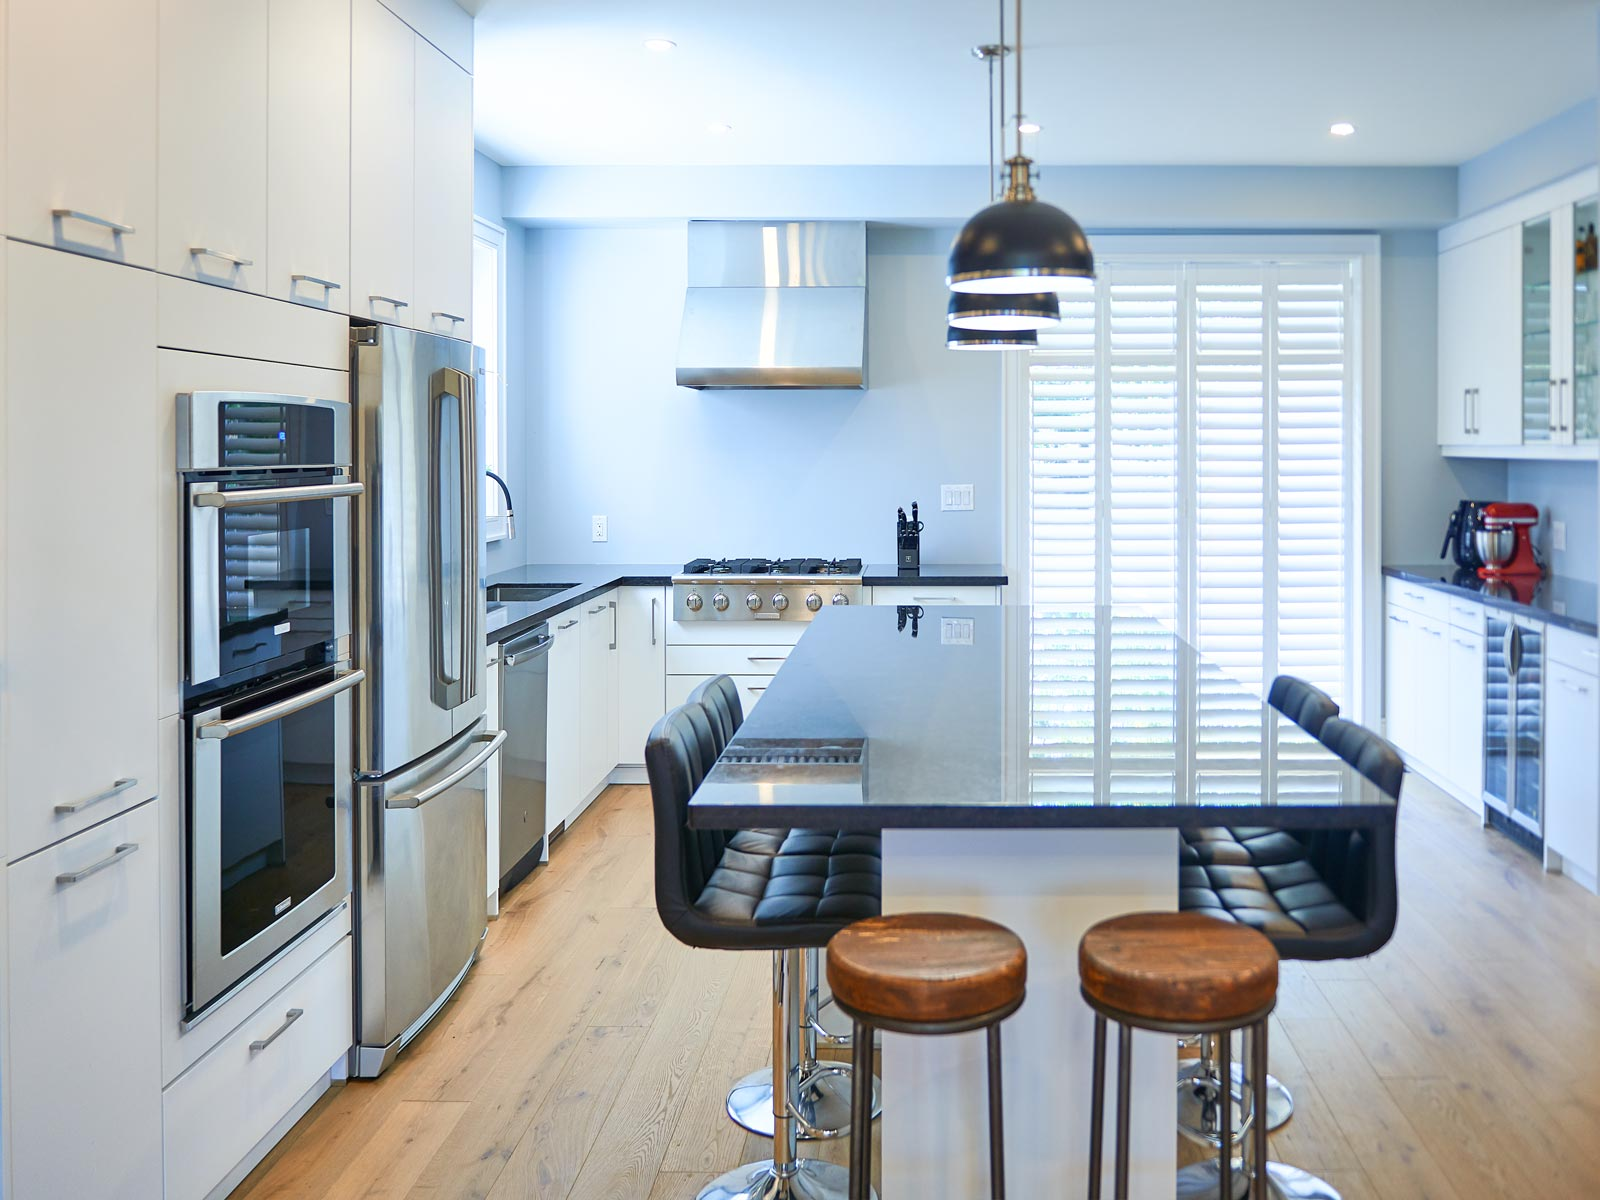 Snow white kitchen with glossy black countertop and Electrolux appliances in blue interior, Toronto